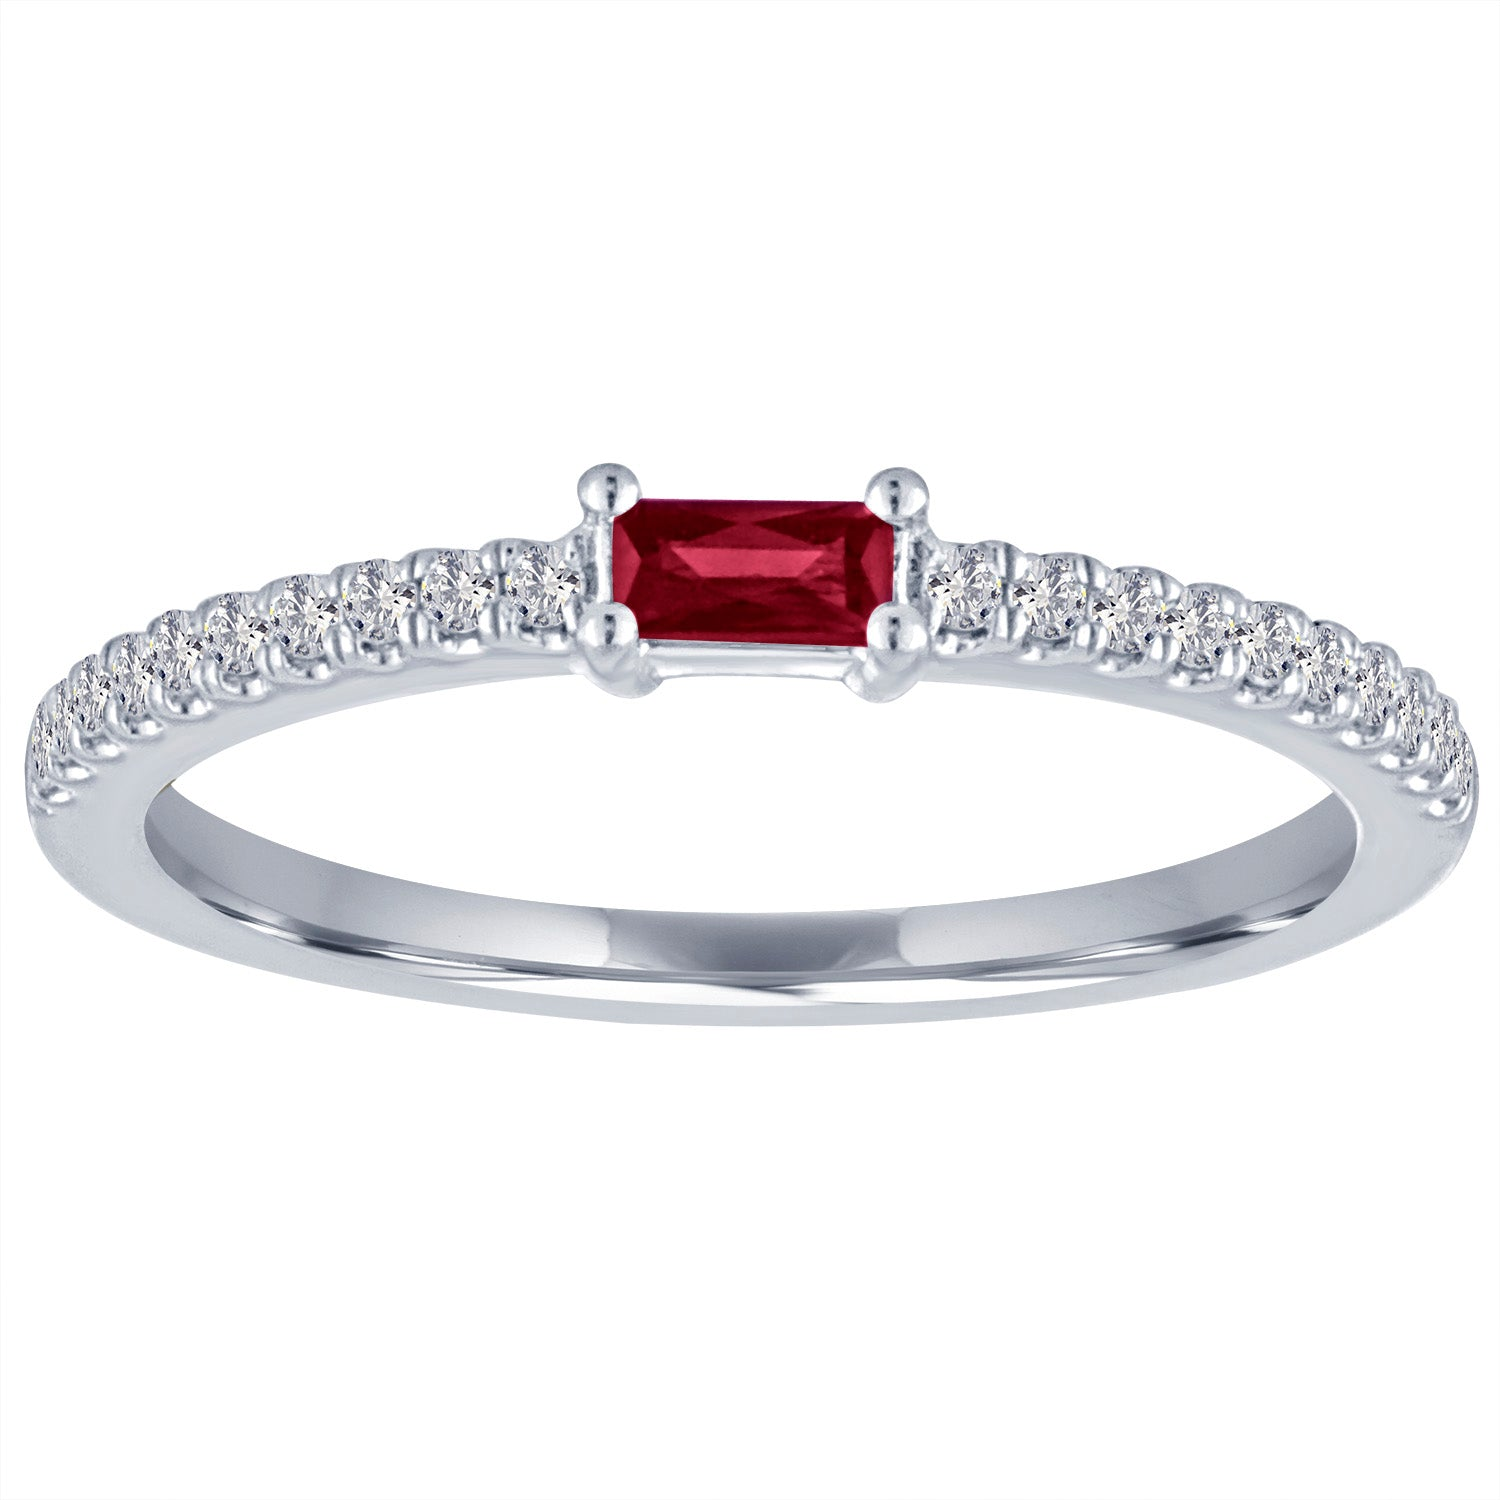 The Julia ring with garnet center